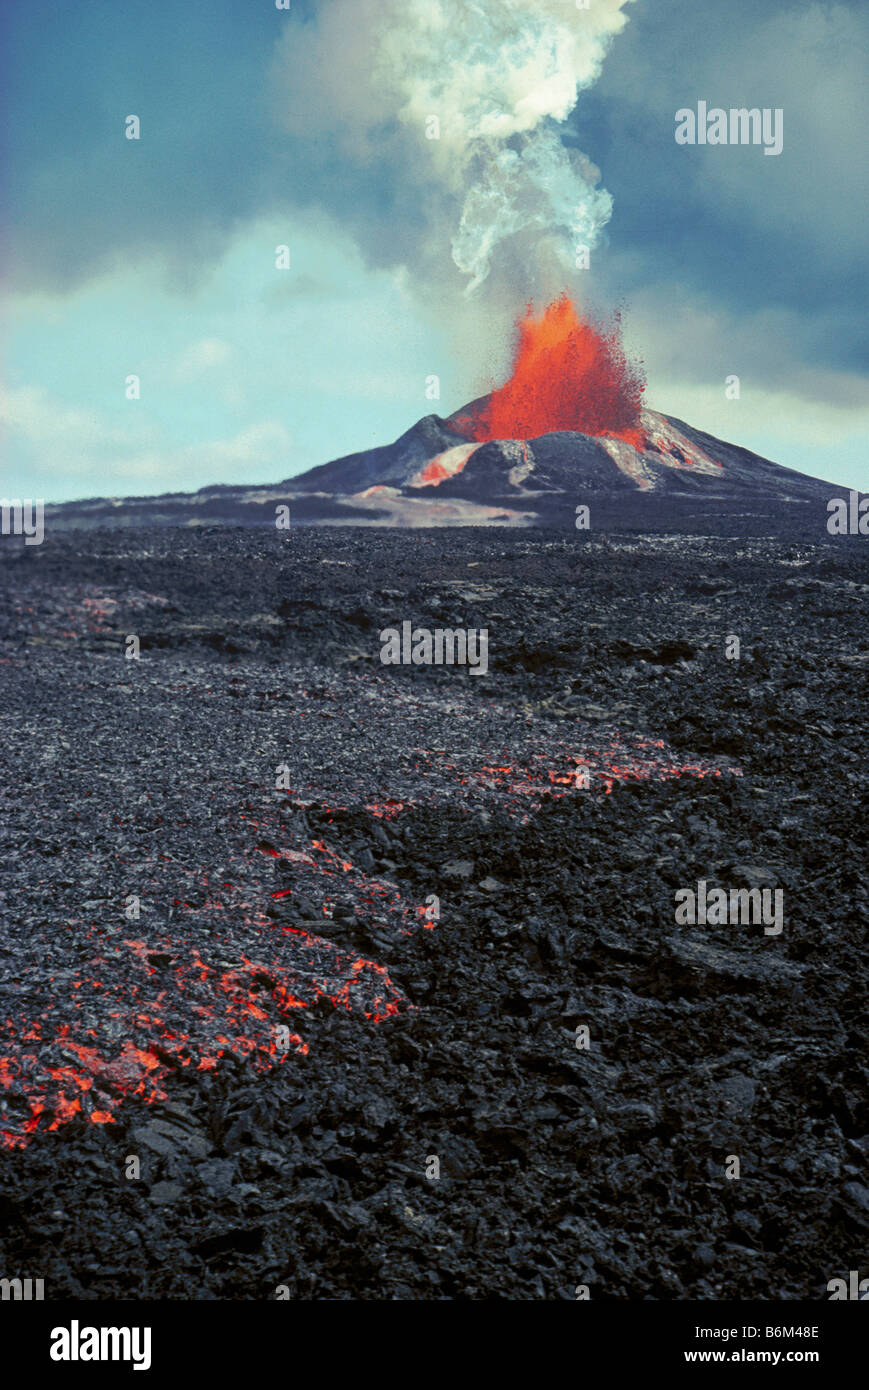 Puu Oo eruption and aa lava flow Hawaii Volcanoes National Park Island of Hawaii - Stock Image